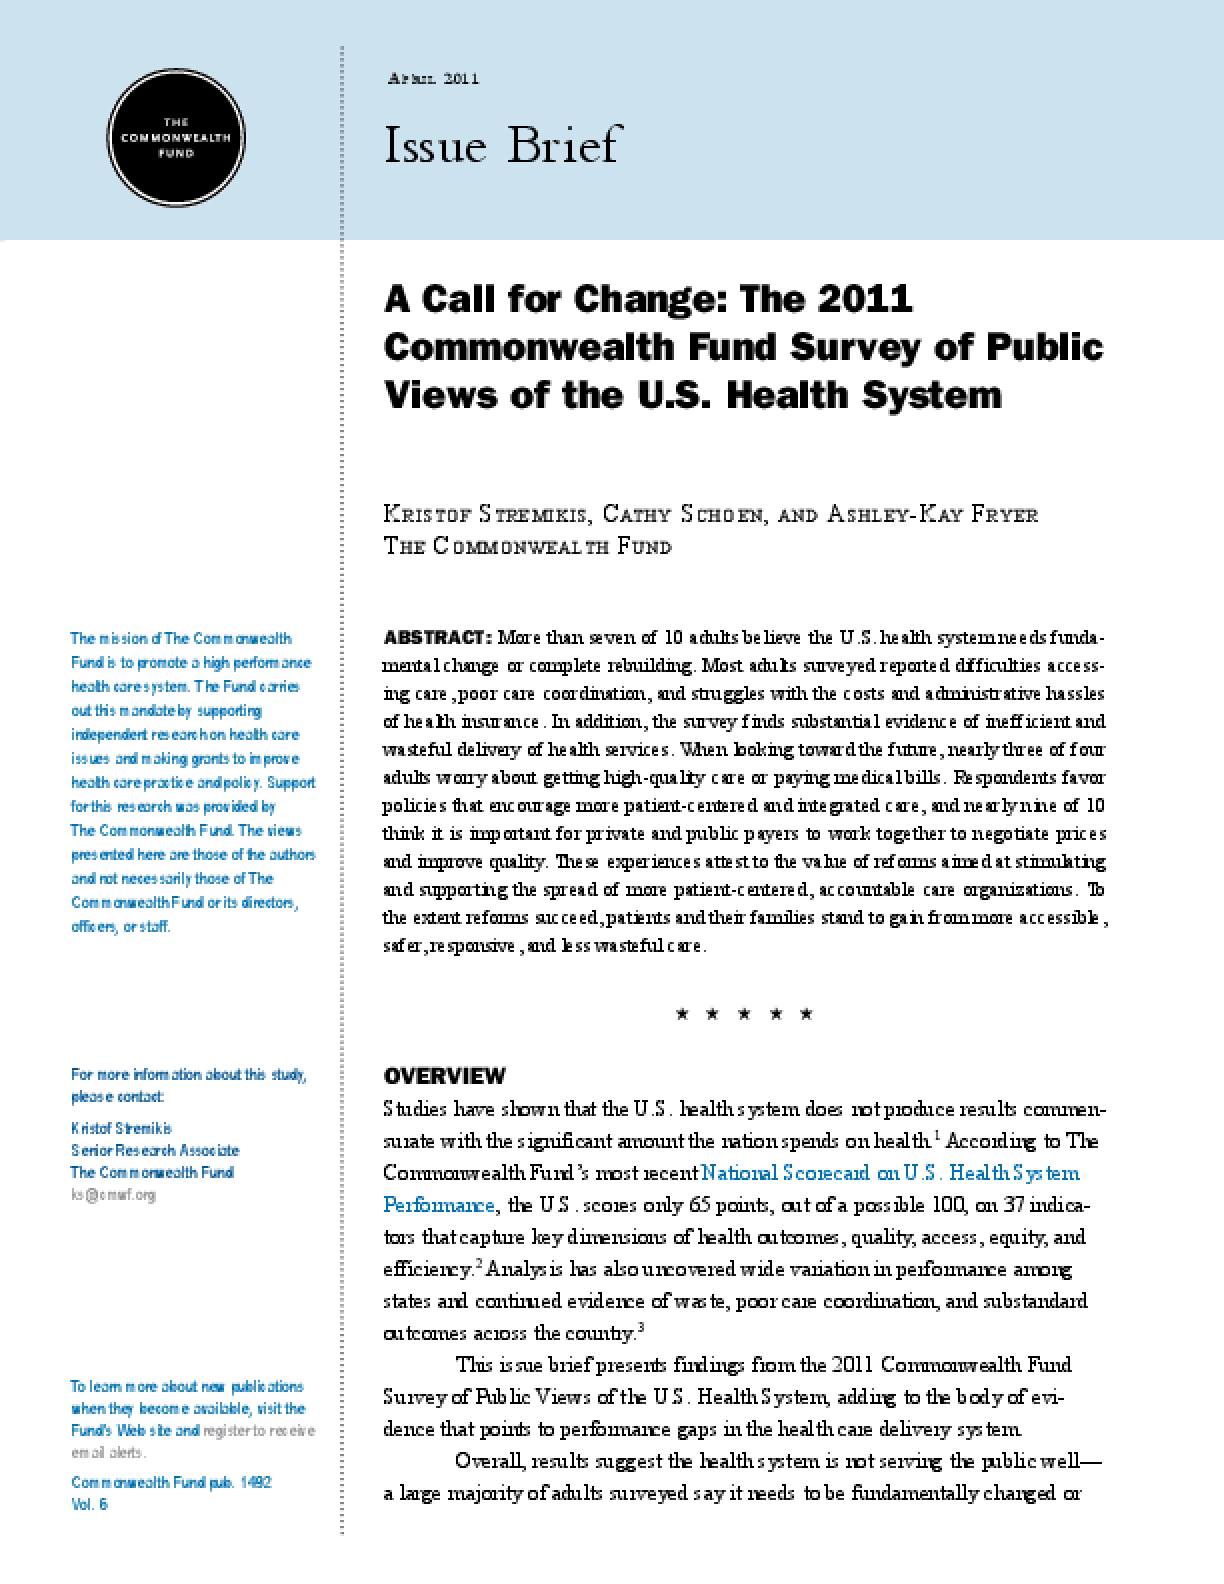 A Call for Change: The 2011 Commonwealth Fund Survey of Public Views of the U.S. Health System